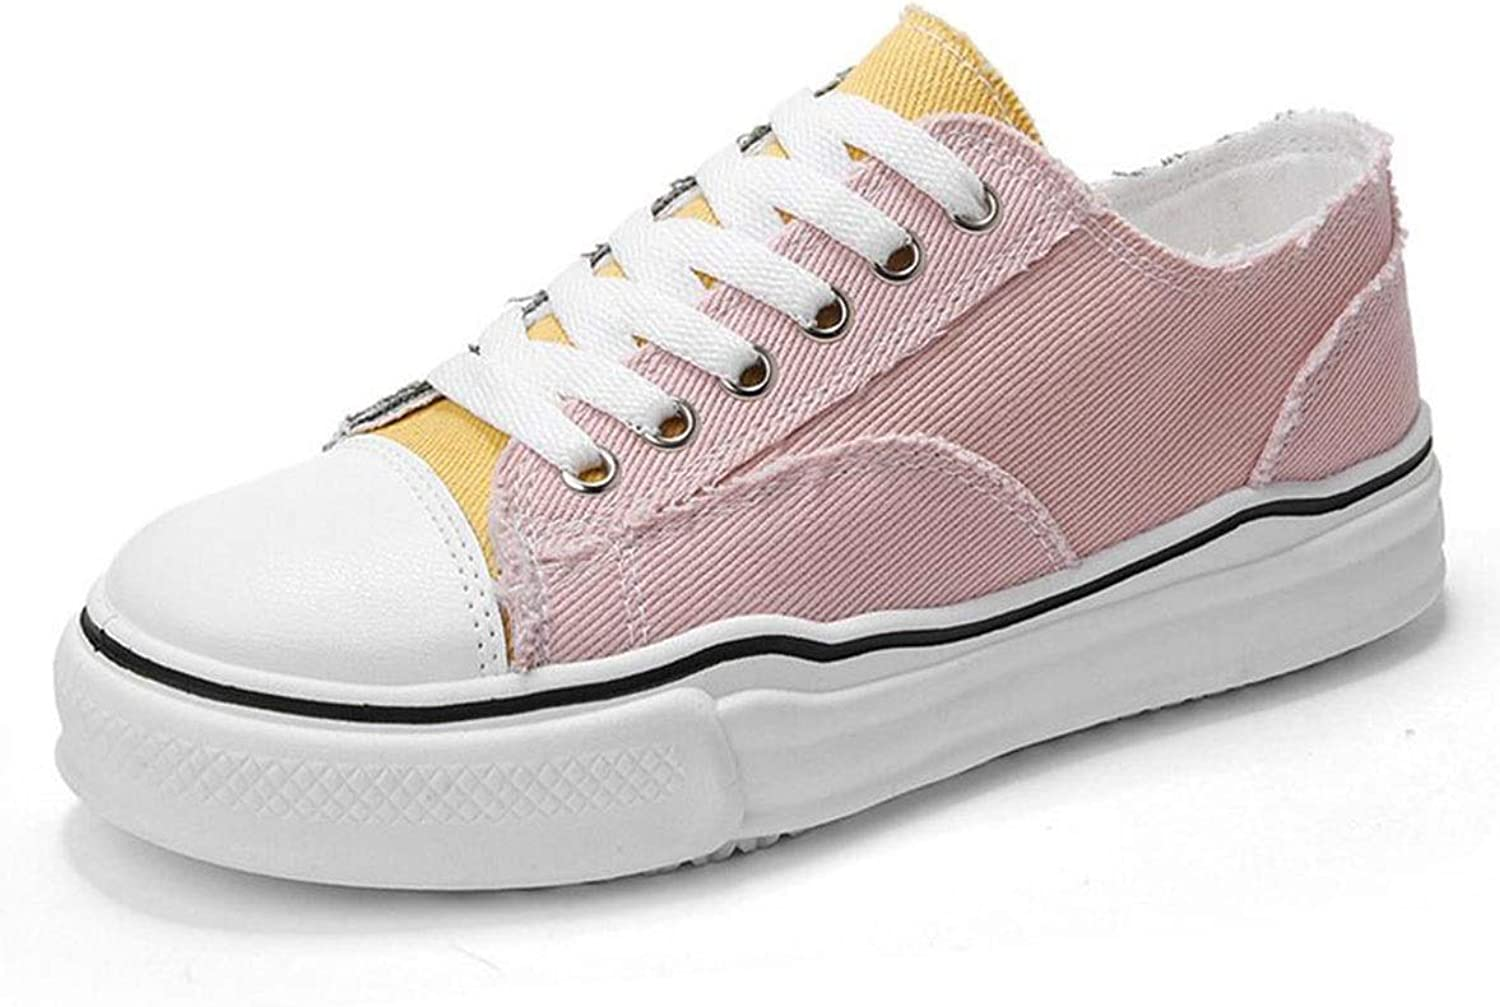 Women's Canvas shoes Casual Sneakers Low Cut Lace Up Fashion Comfortable Walking Flats,Women's Canvas shoes Fashion Low Cut Loafer Sneakers (color   Pink, Size   35)